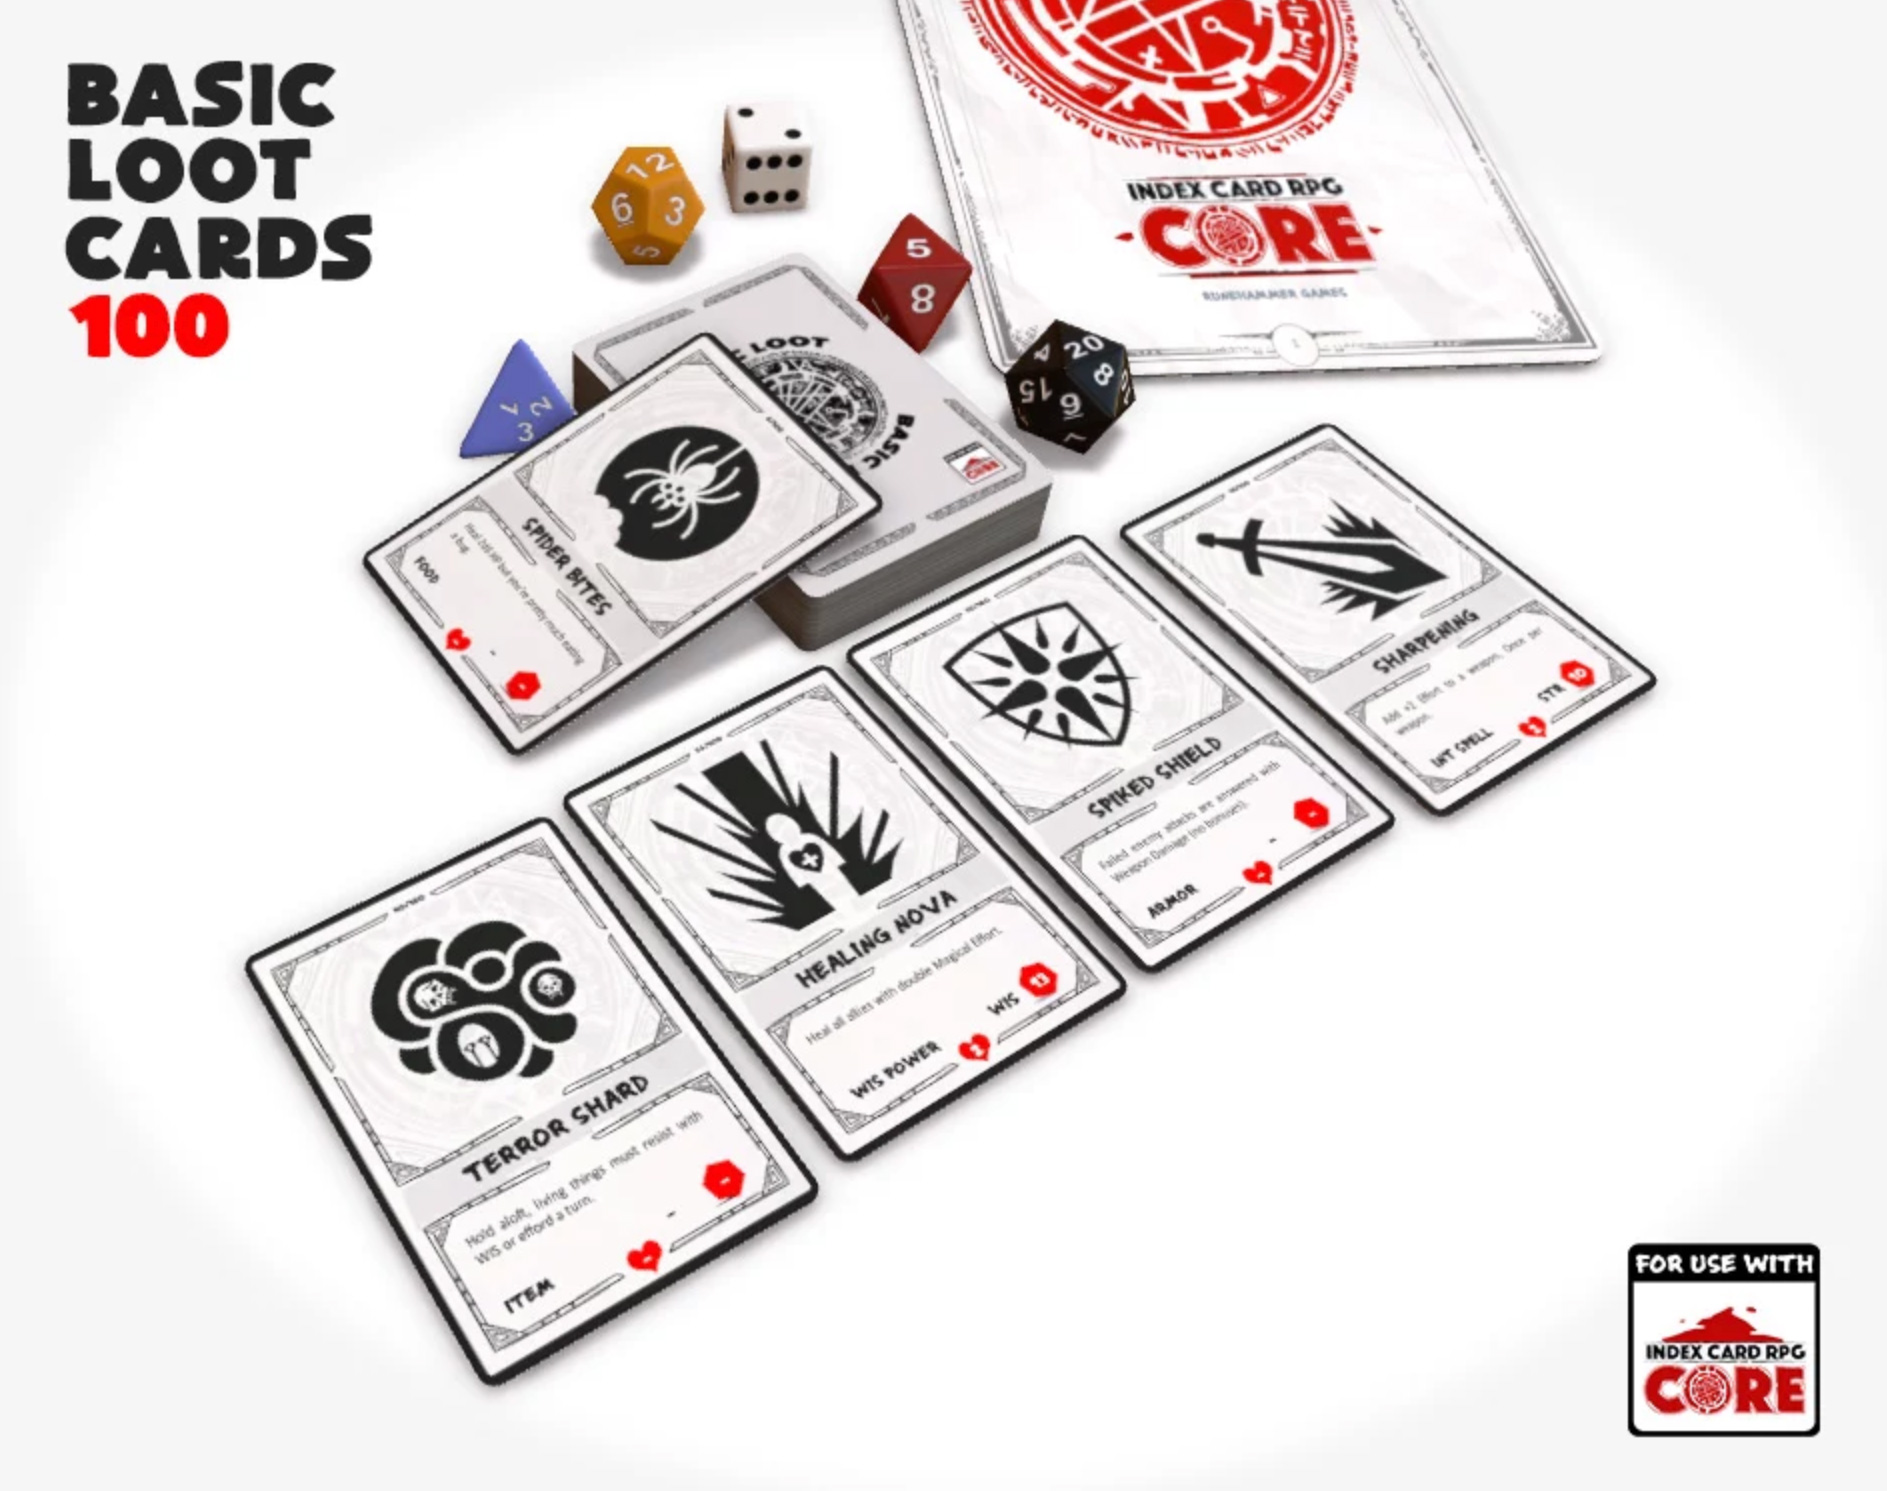 ICRPG - 100 Basic Loot Cards by Delacannon